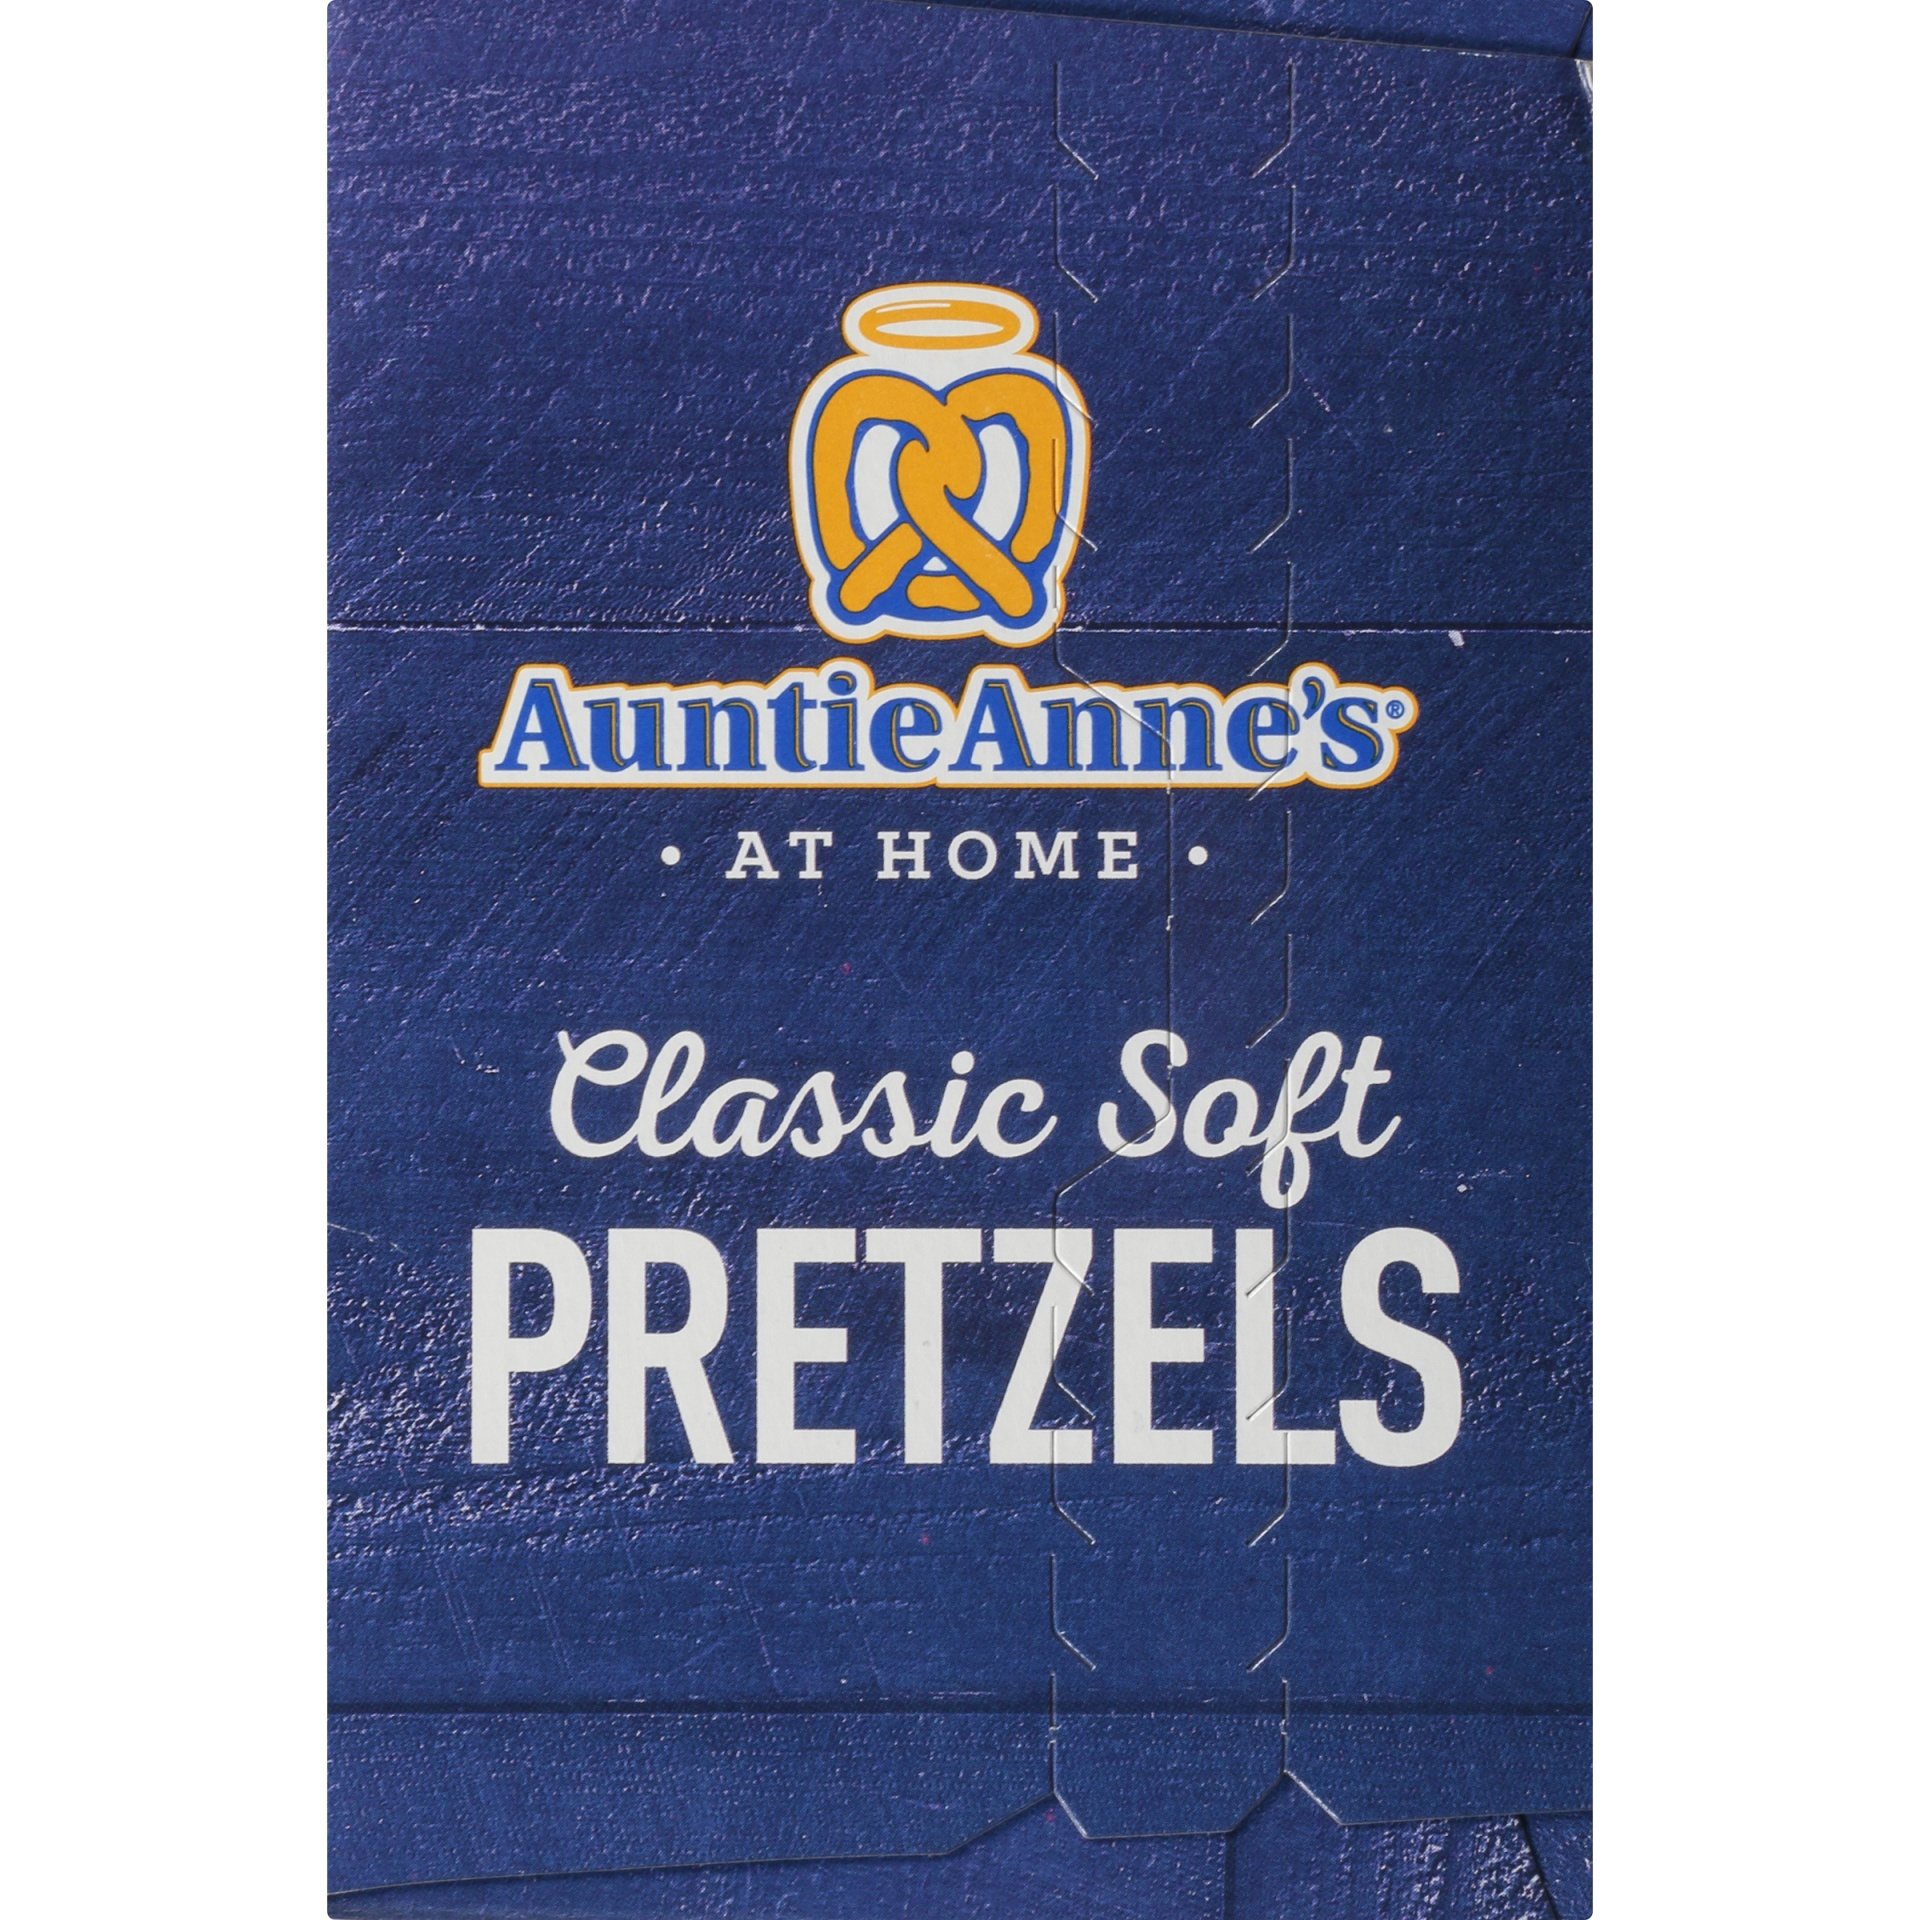 slide 5 of 8, Auntie Anne's Classic Soft Pretzels,